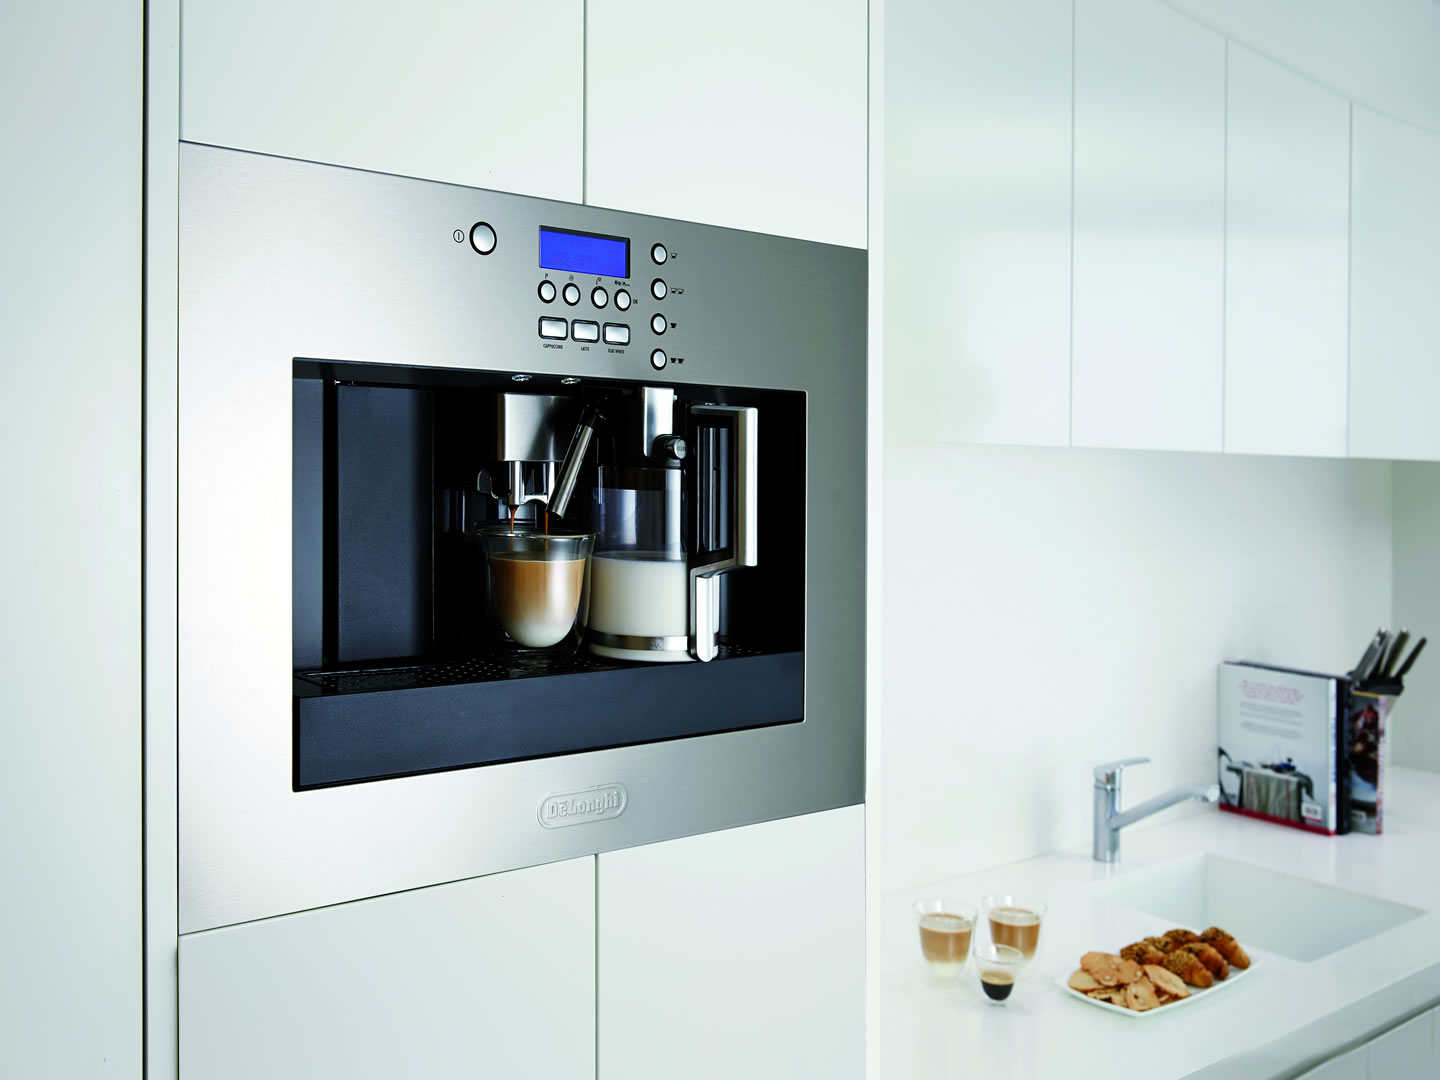 PrimaDonna EABI 6600 - Built-in Coffee Machine - Lifestyle